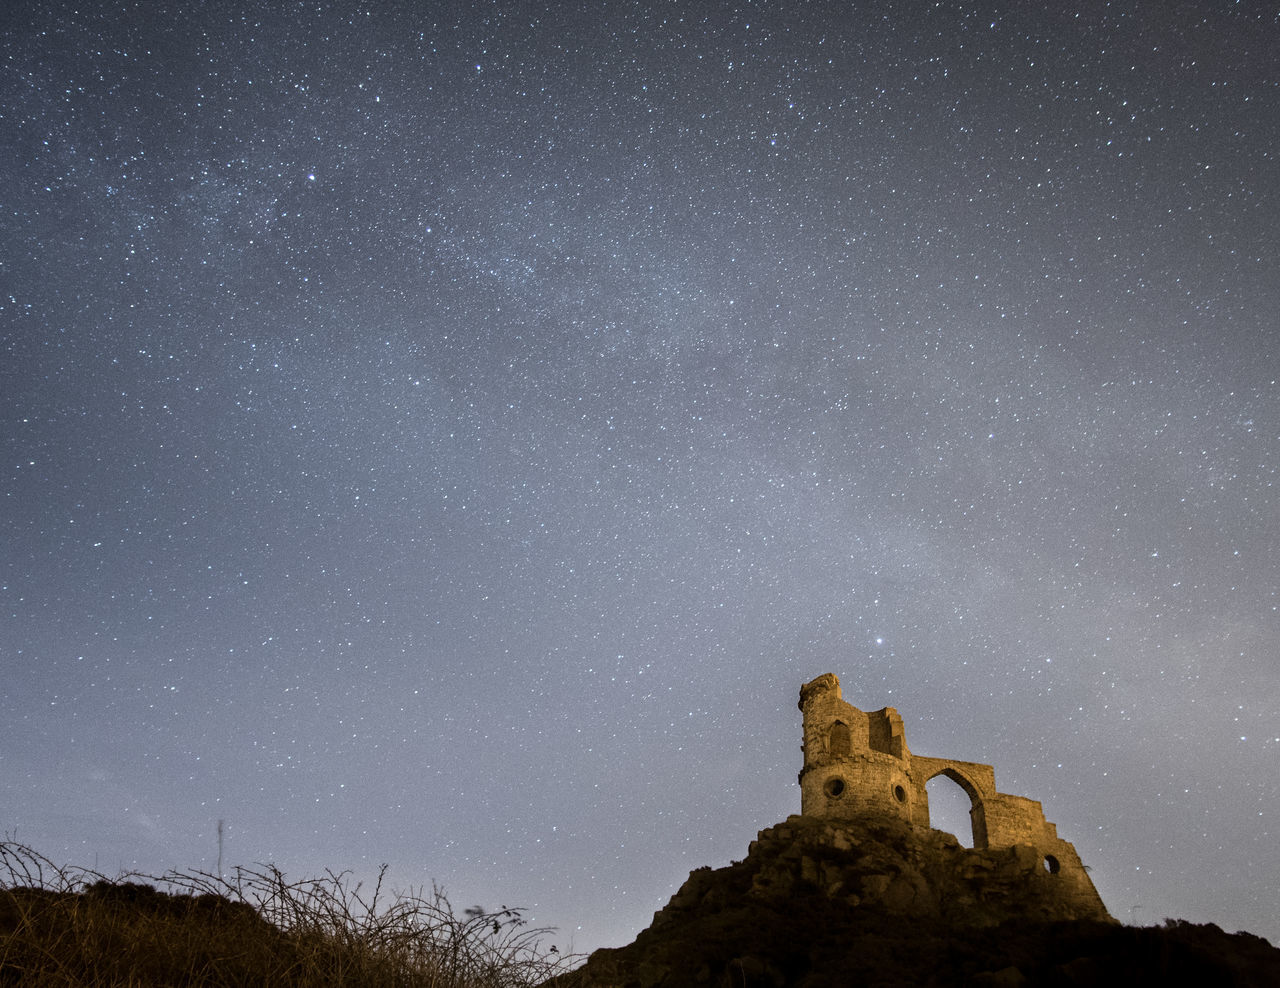 Star - Space Sky Astronomy Night Milky Way Beauty In Nature Galaxy Space And Astronomy Constellation Scenics Space Ancient Nature Outdoors Tree Star Field No People Architecture Astrology Sign Mow Cop Castle Milkyway